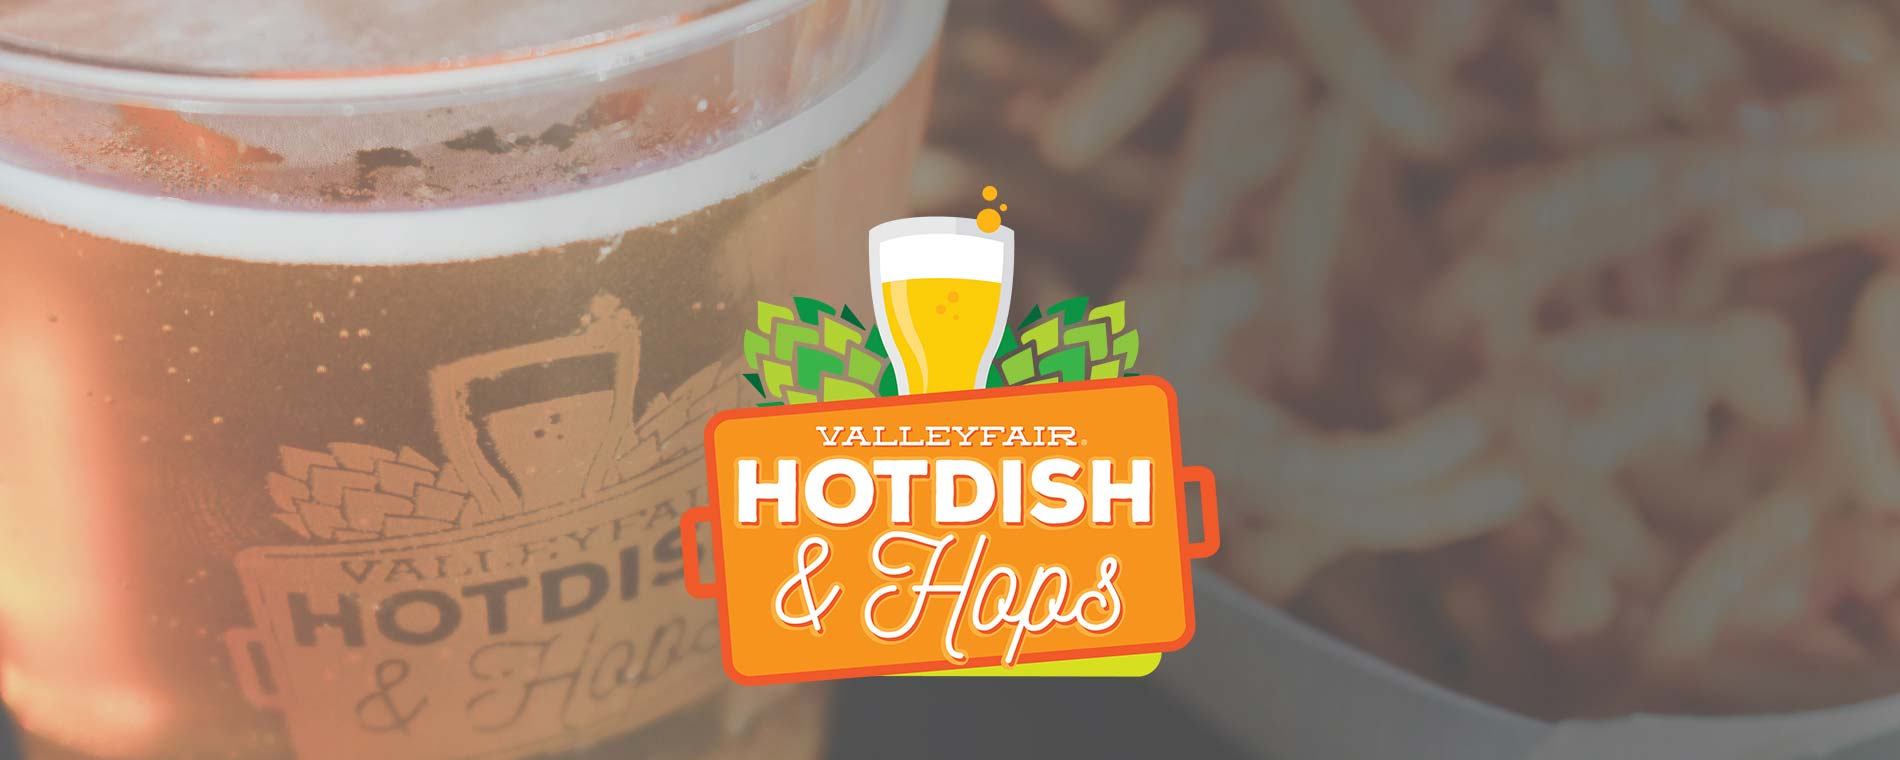 Hotdish and Hops at Valleyfair